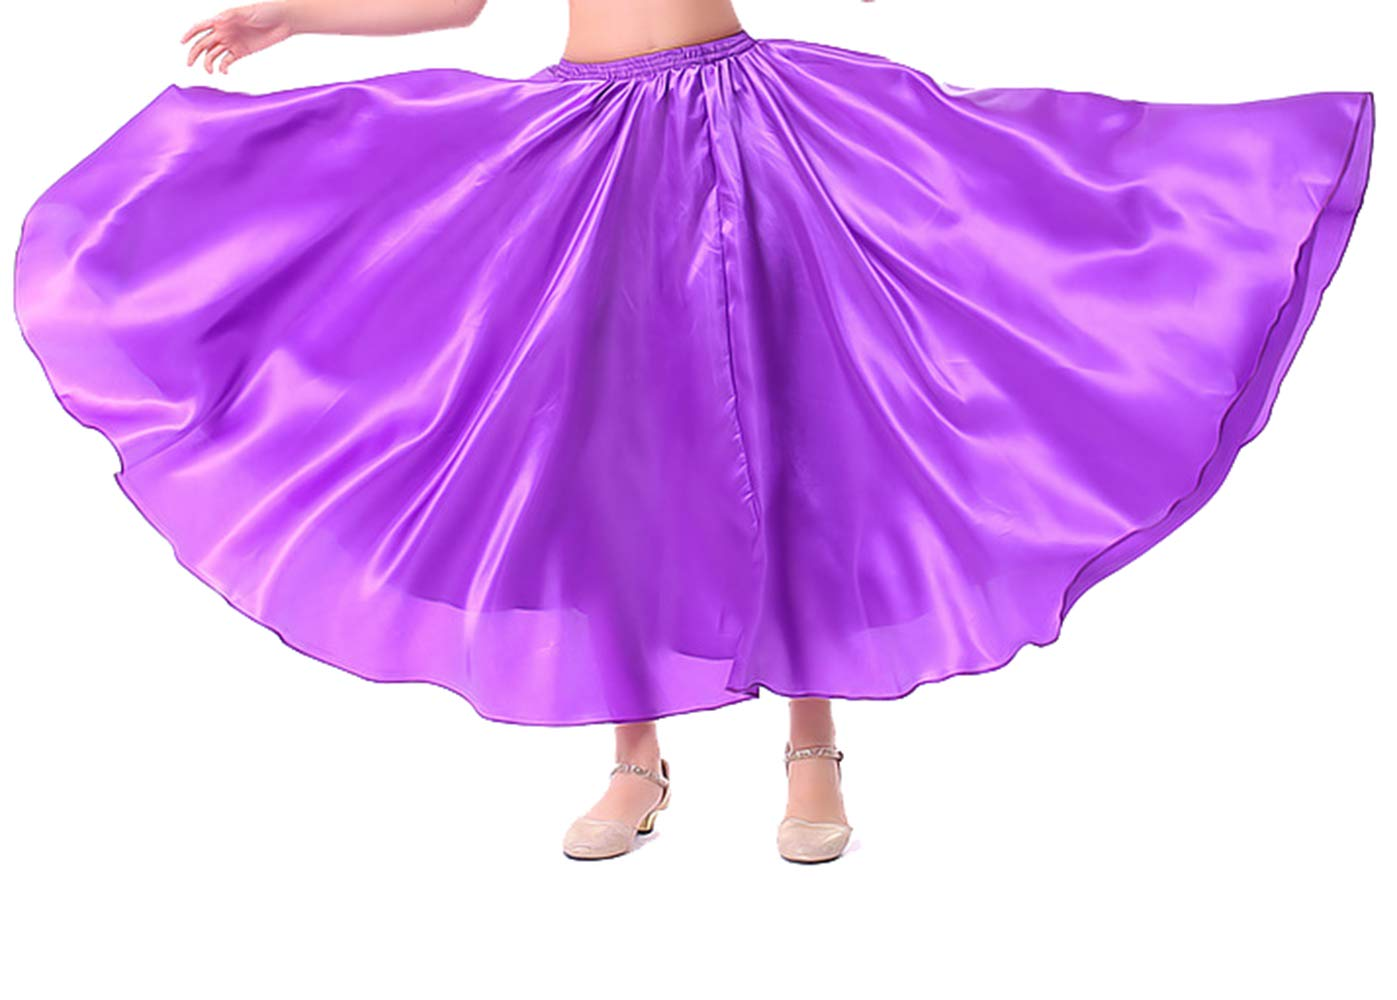 Lauthen.S Kids Gilrs Skirt for Belly Dance/Performance/Halloween Party, Satin Full Circle Tribal Skirt(Purple,L) by Lauthen.S